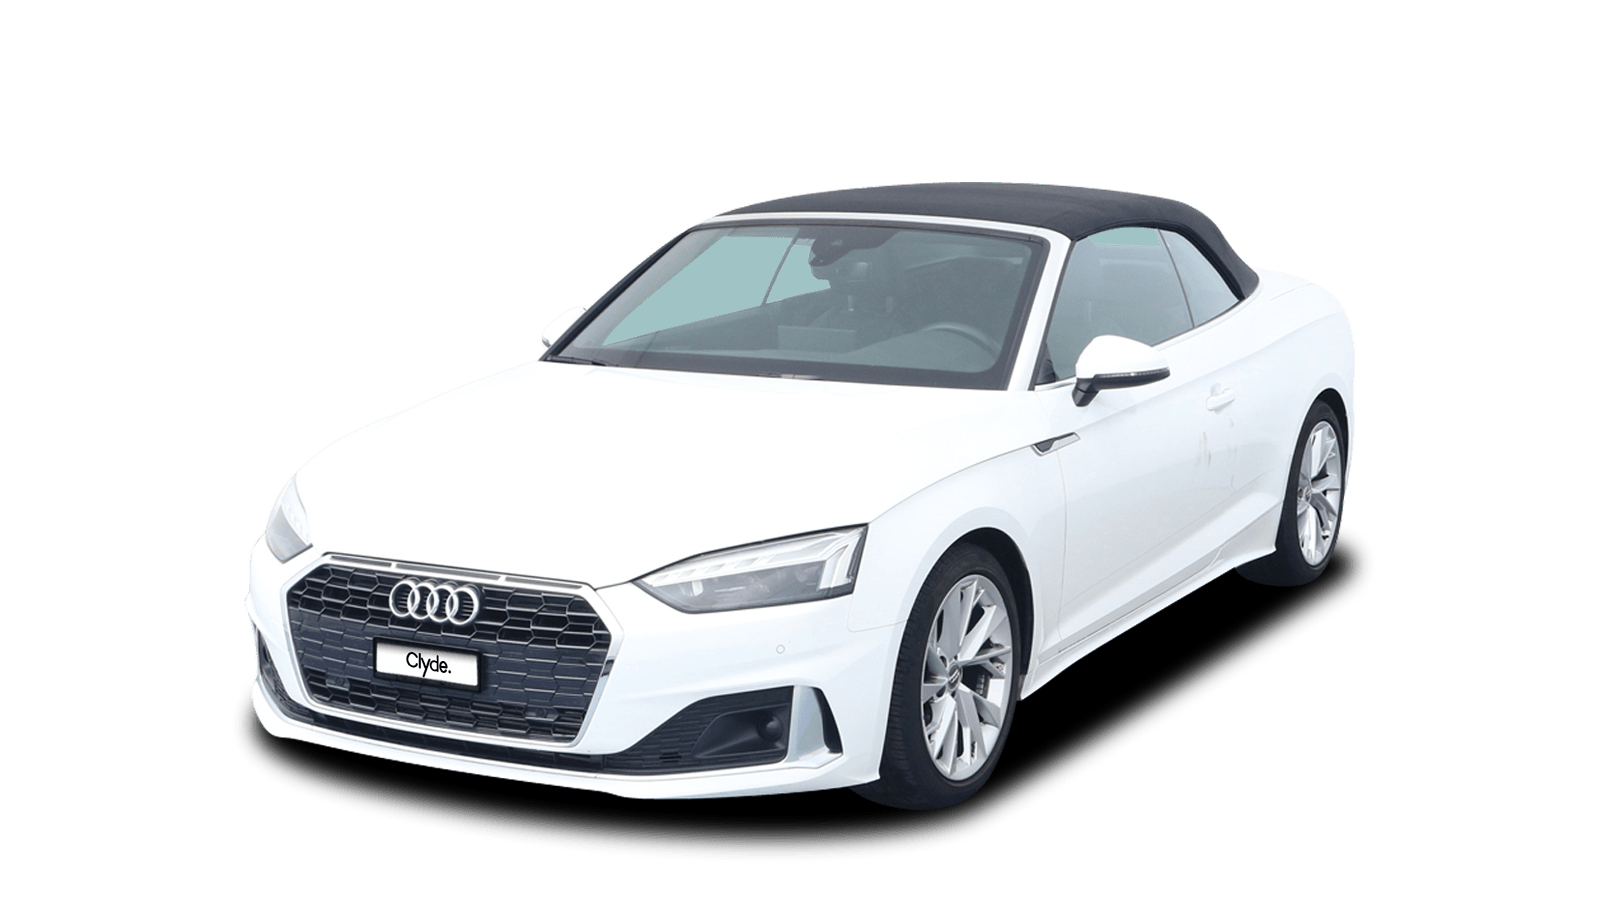 Audi A5 Cabriolet Weiss front - Clyde Auto-Abo